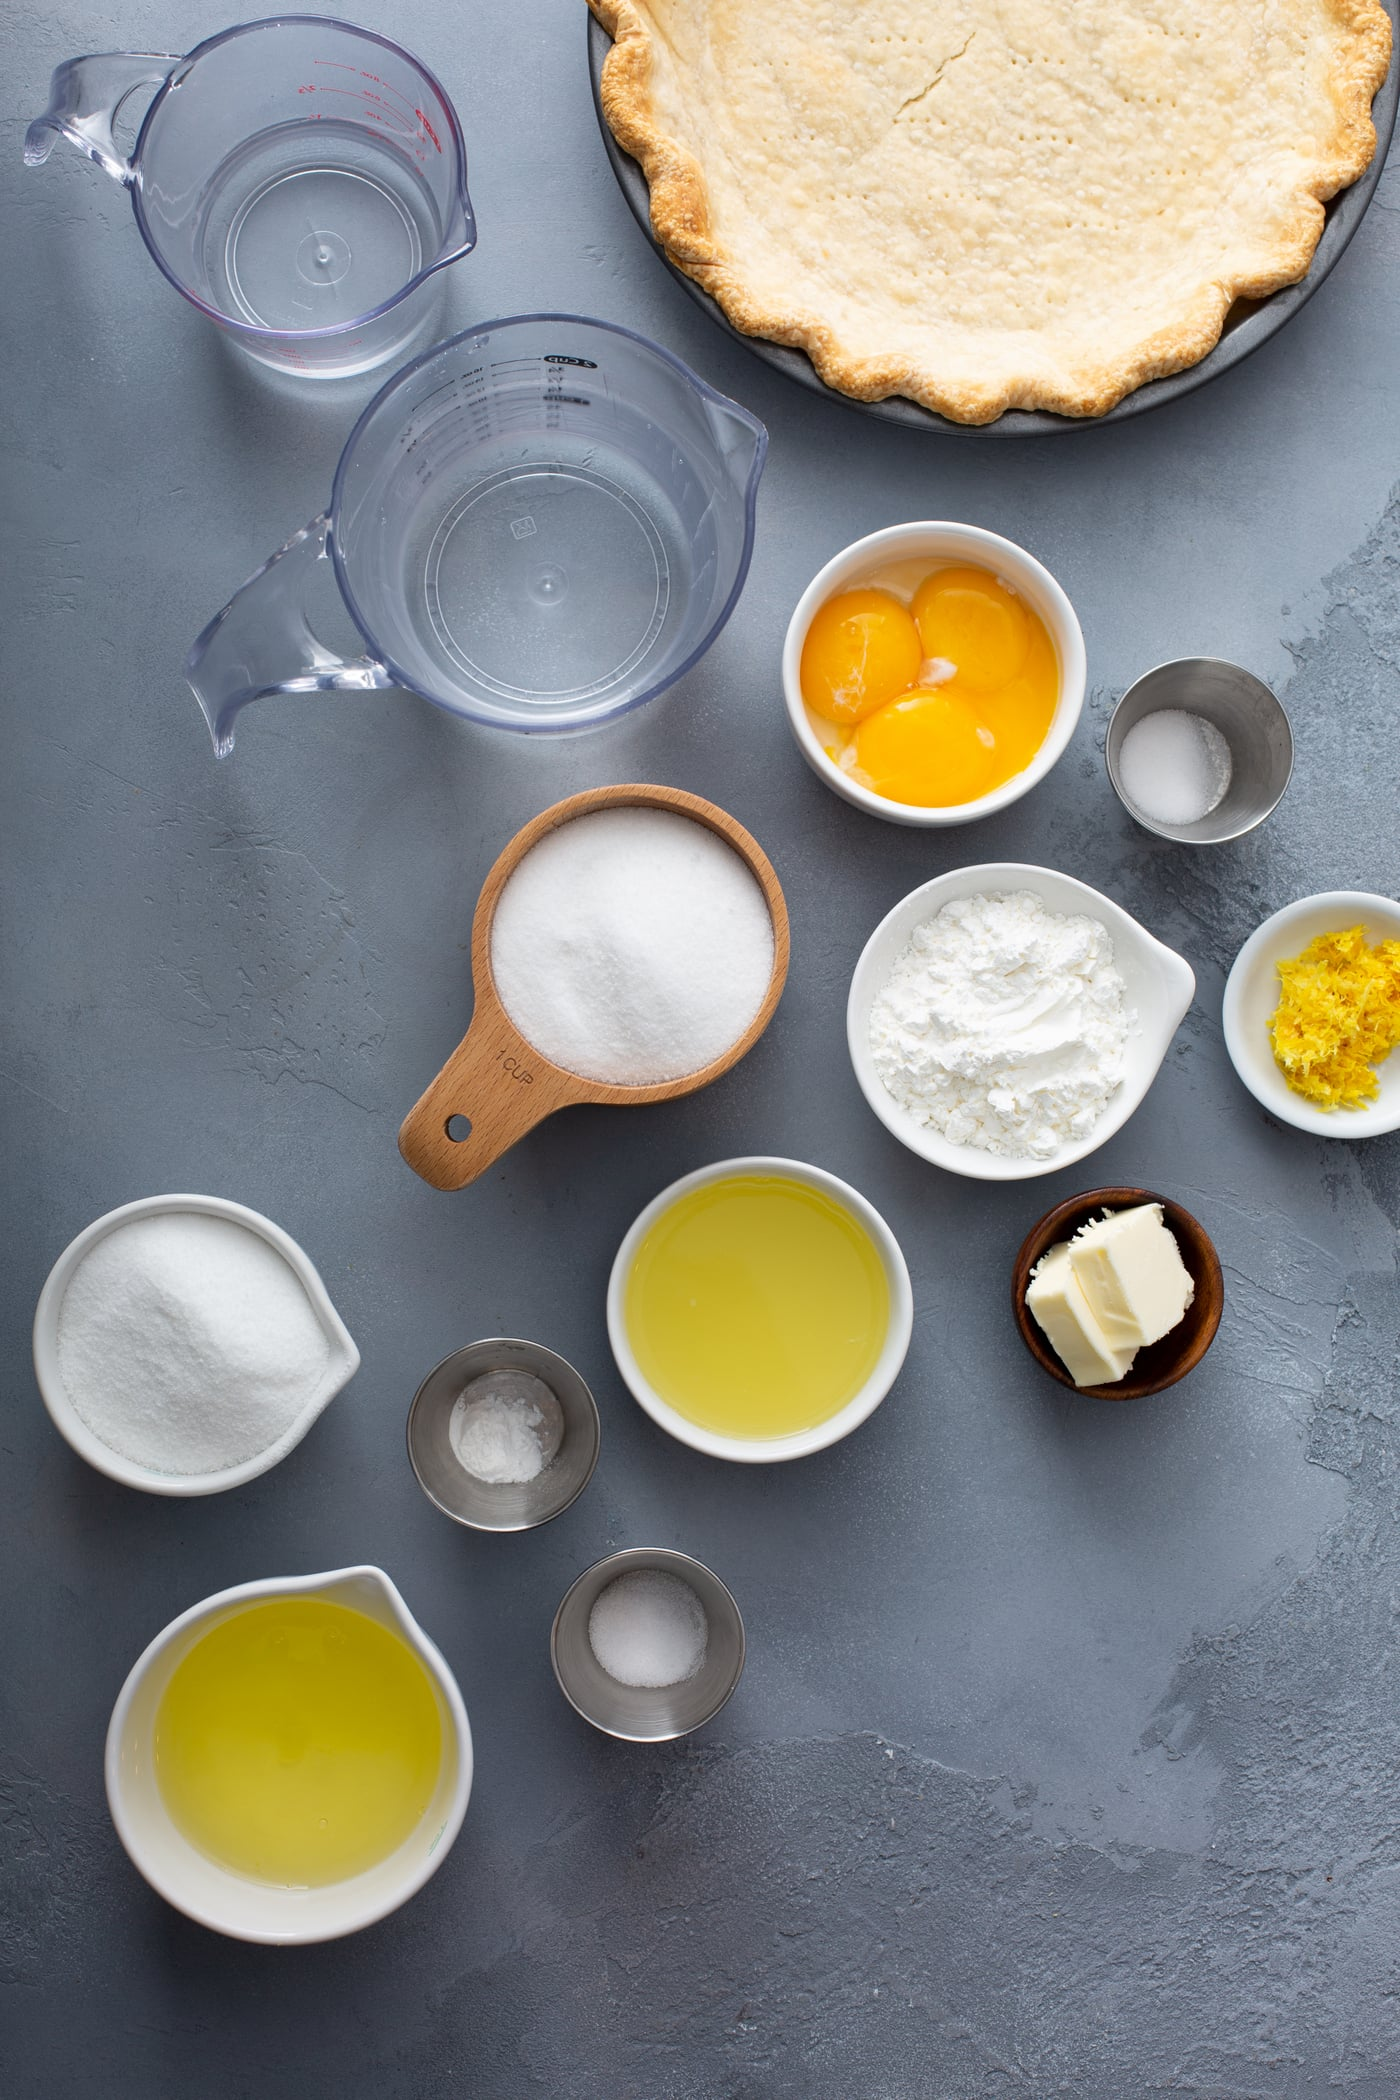 a picture of measuring cups with ingredients for lemon meringue pie. there are containers of eggs, water, sugar, salt lemon juice, lemon zest, butter, etc.